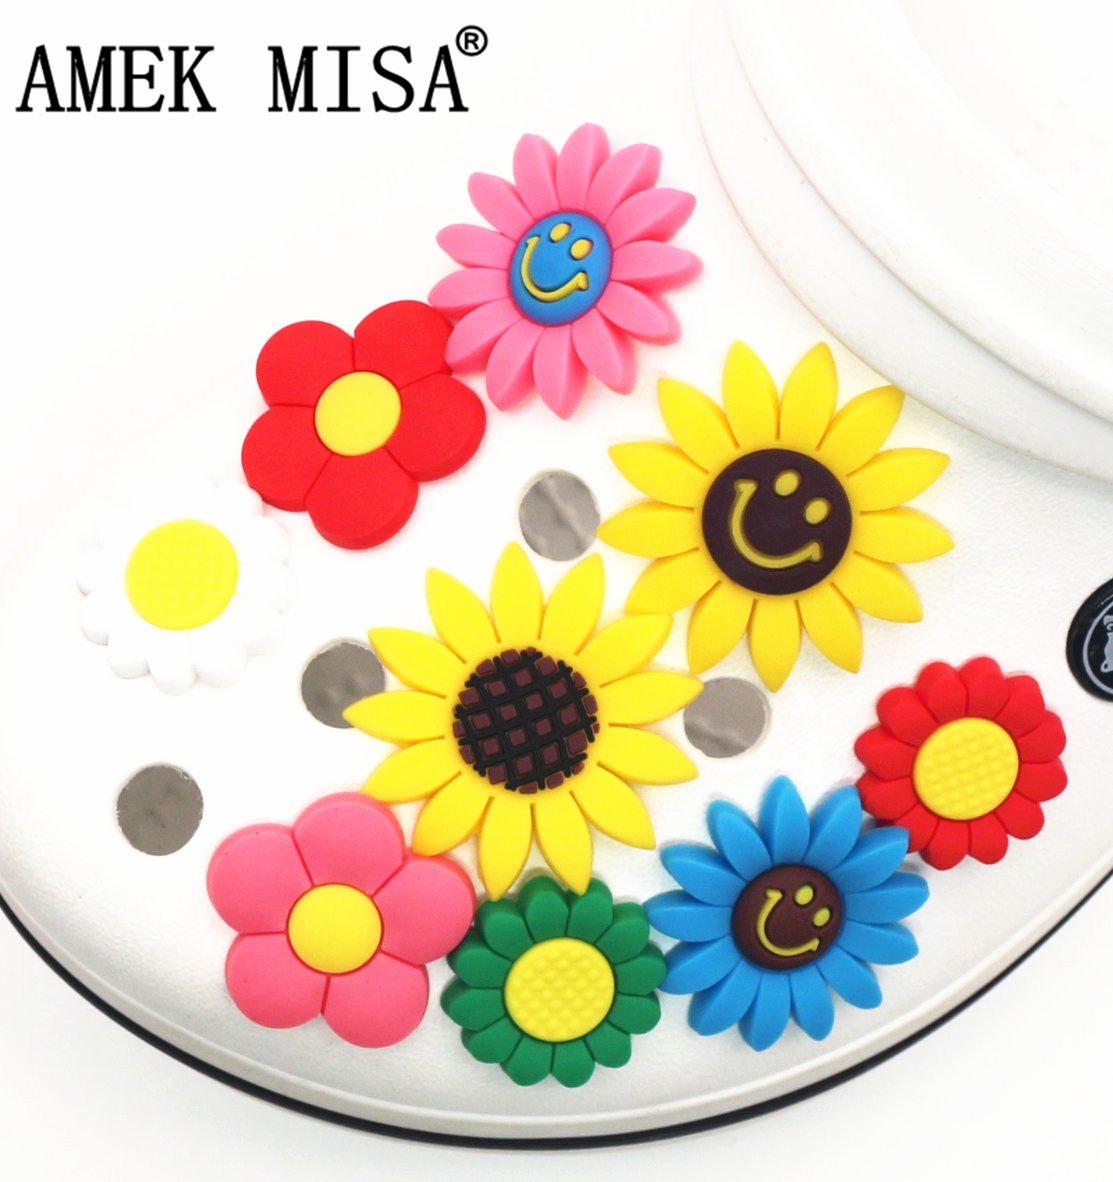 Cute Sunflower PVC Shoe Charms Single Sale 12 Kinds Of Flowers Garden Shoe Buckle Decoration For Croc Wristband Jibz Kids Party